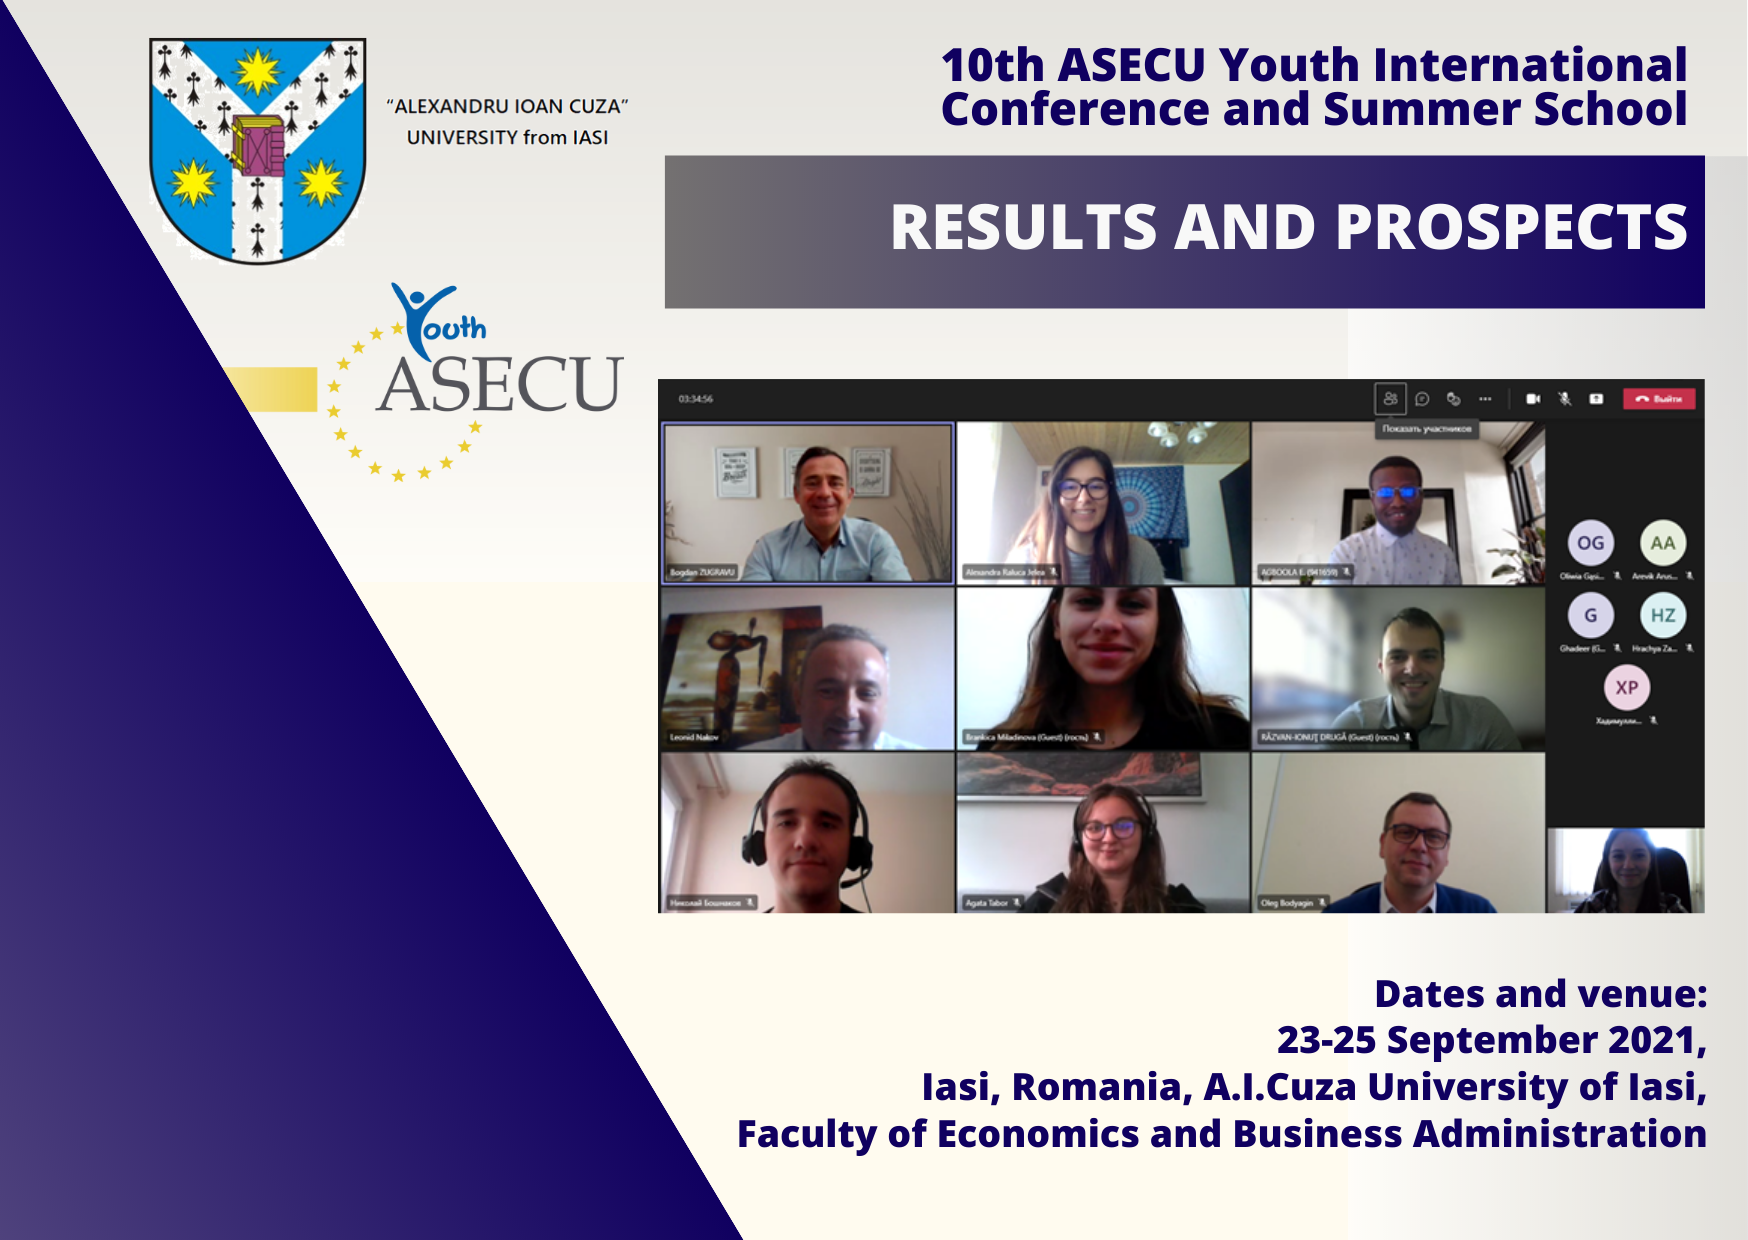 Main outcomes and results of the 10th Anniversary AYIC&SS